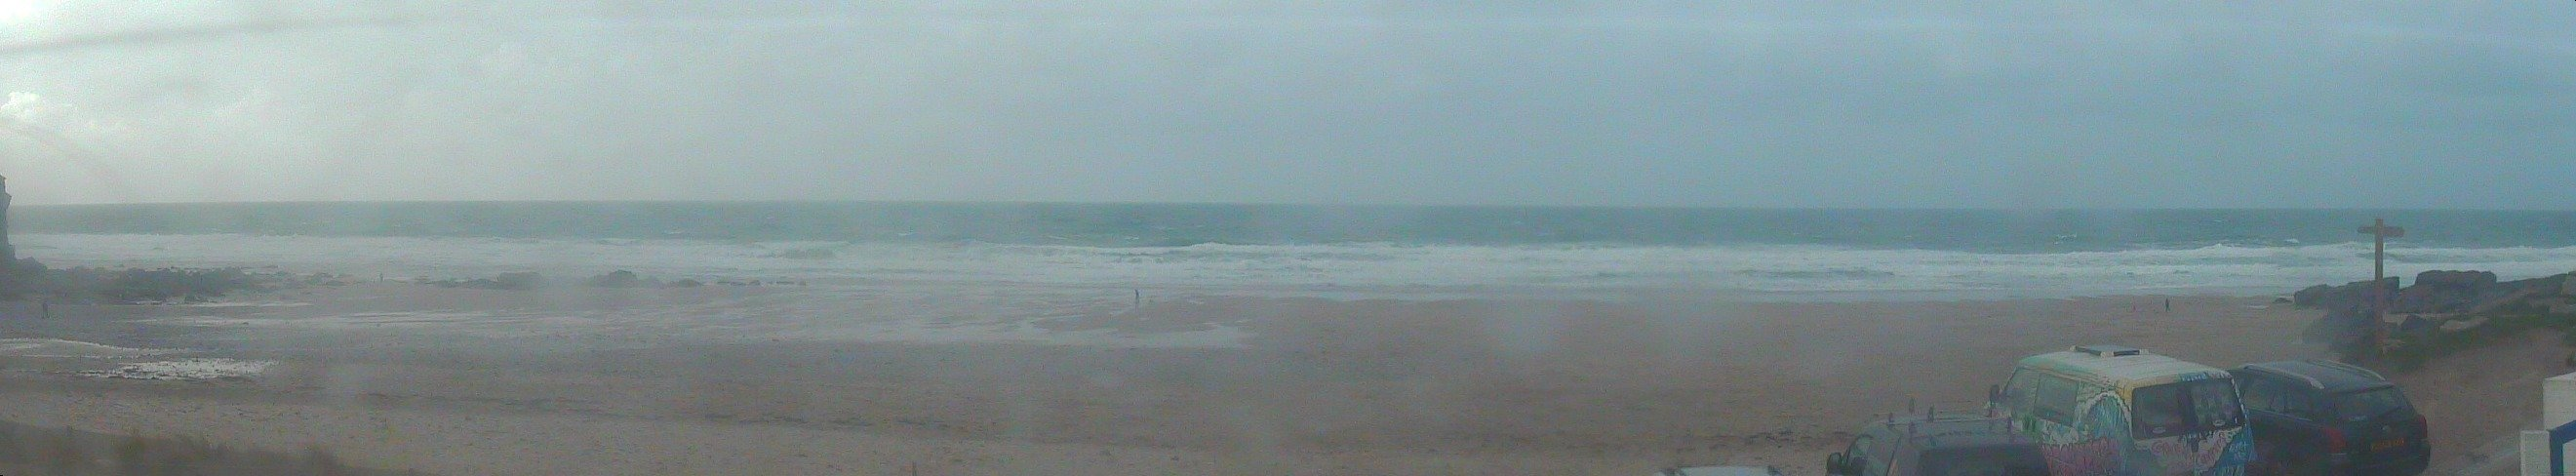 Latest webcam still for Porthtowan